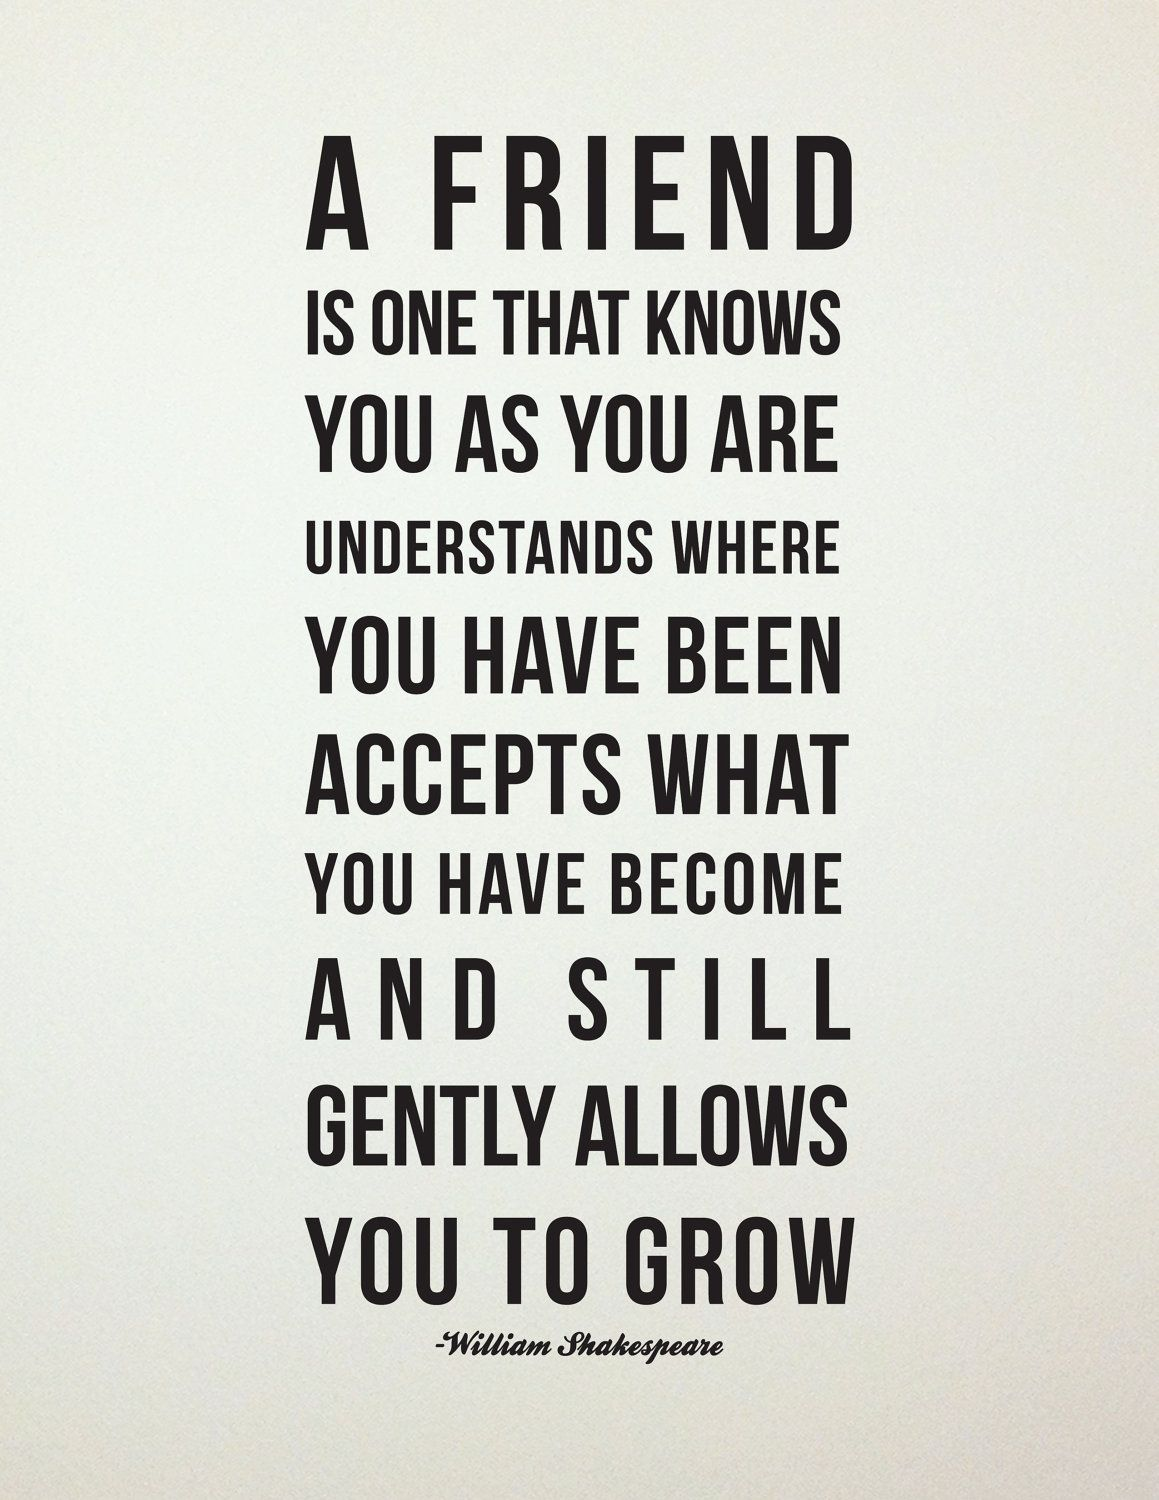 Pin By J E S M I T H On Just Stuff Love Shakespeare Quote Friendship Inspirational Friend Quotes How To Paraphrase